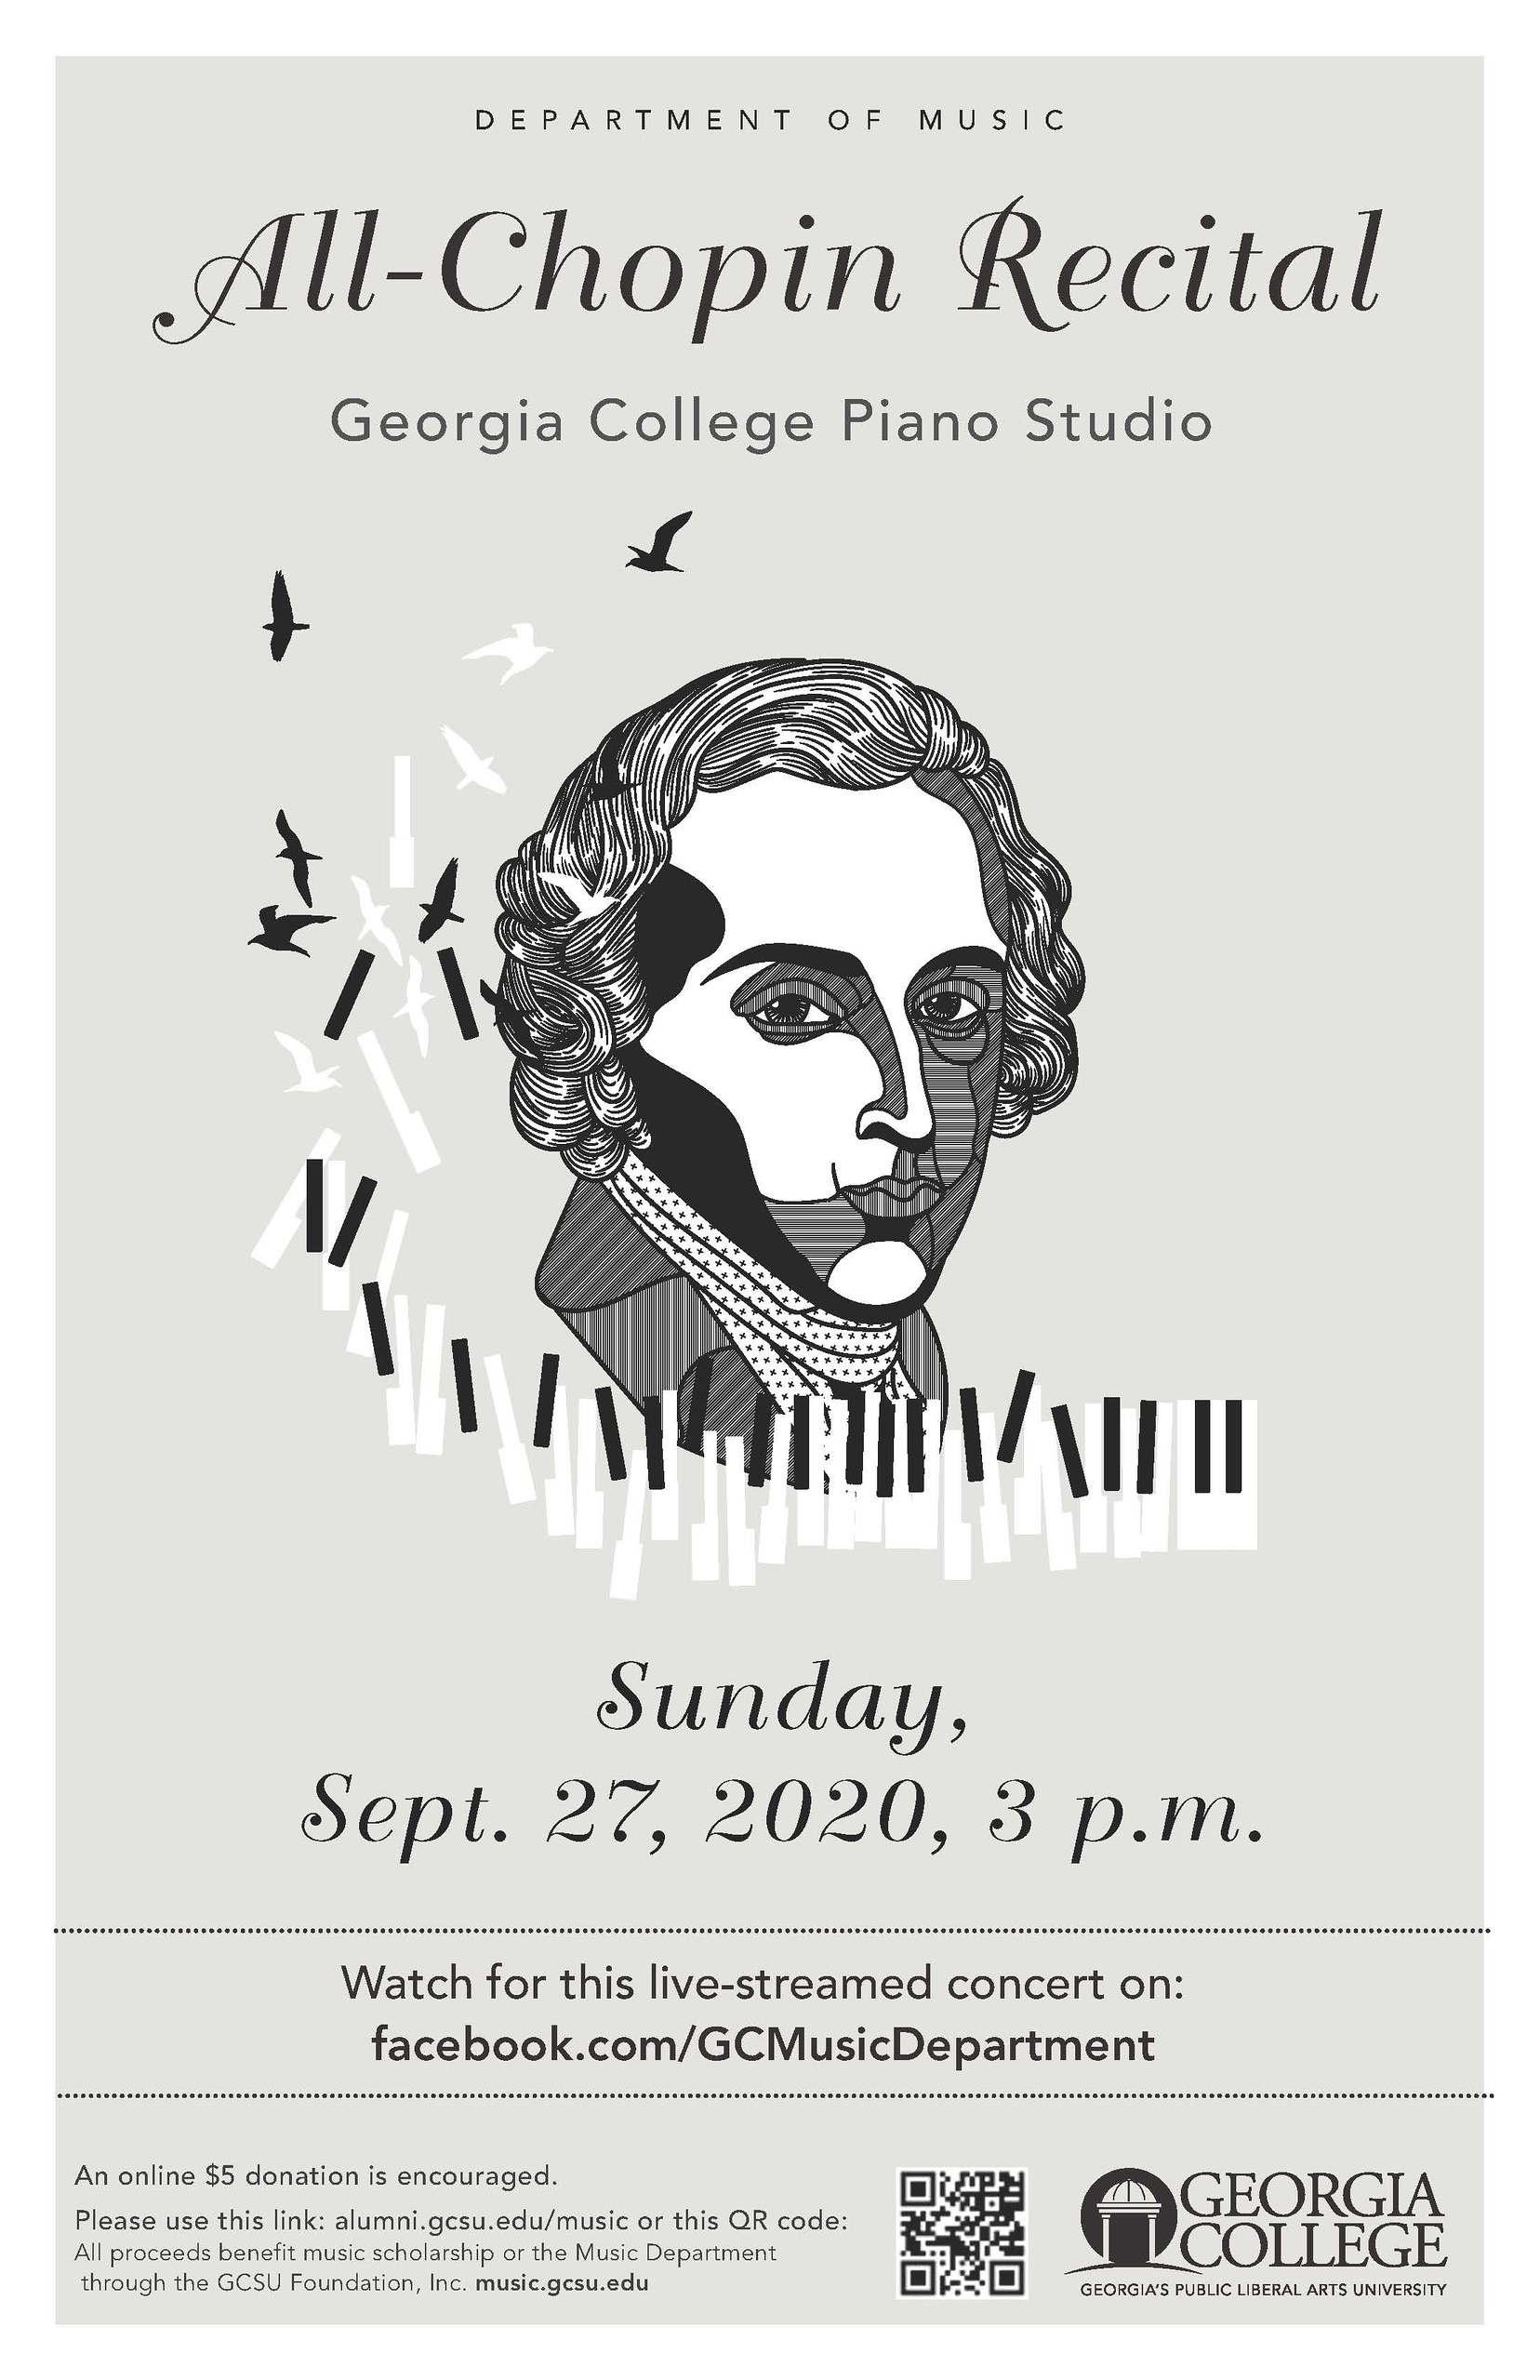 Please join us Sunday afternoon, 3:00 pm, at facebook.com/GCMusicDepartment for this recital.